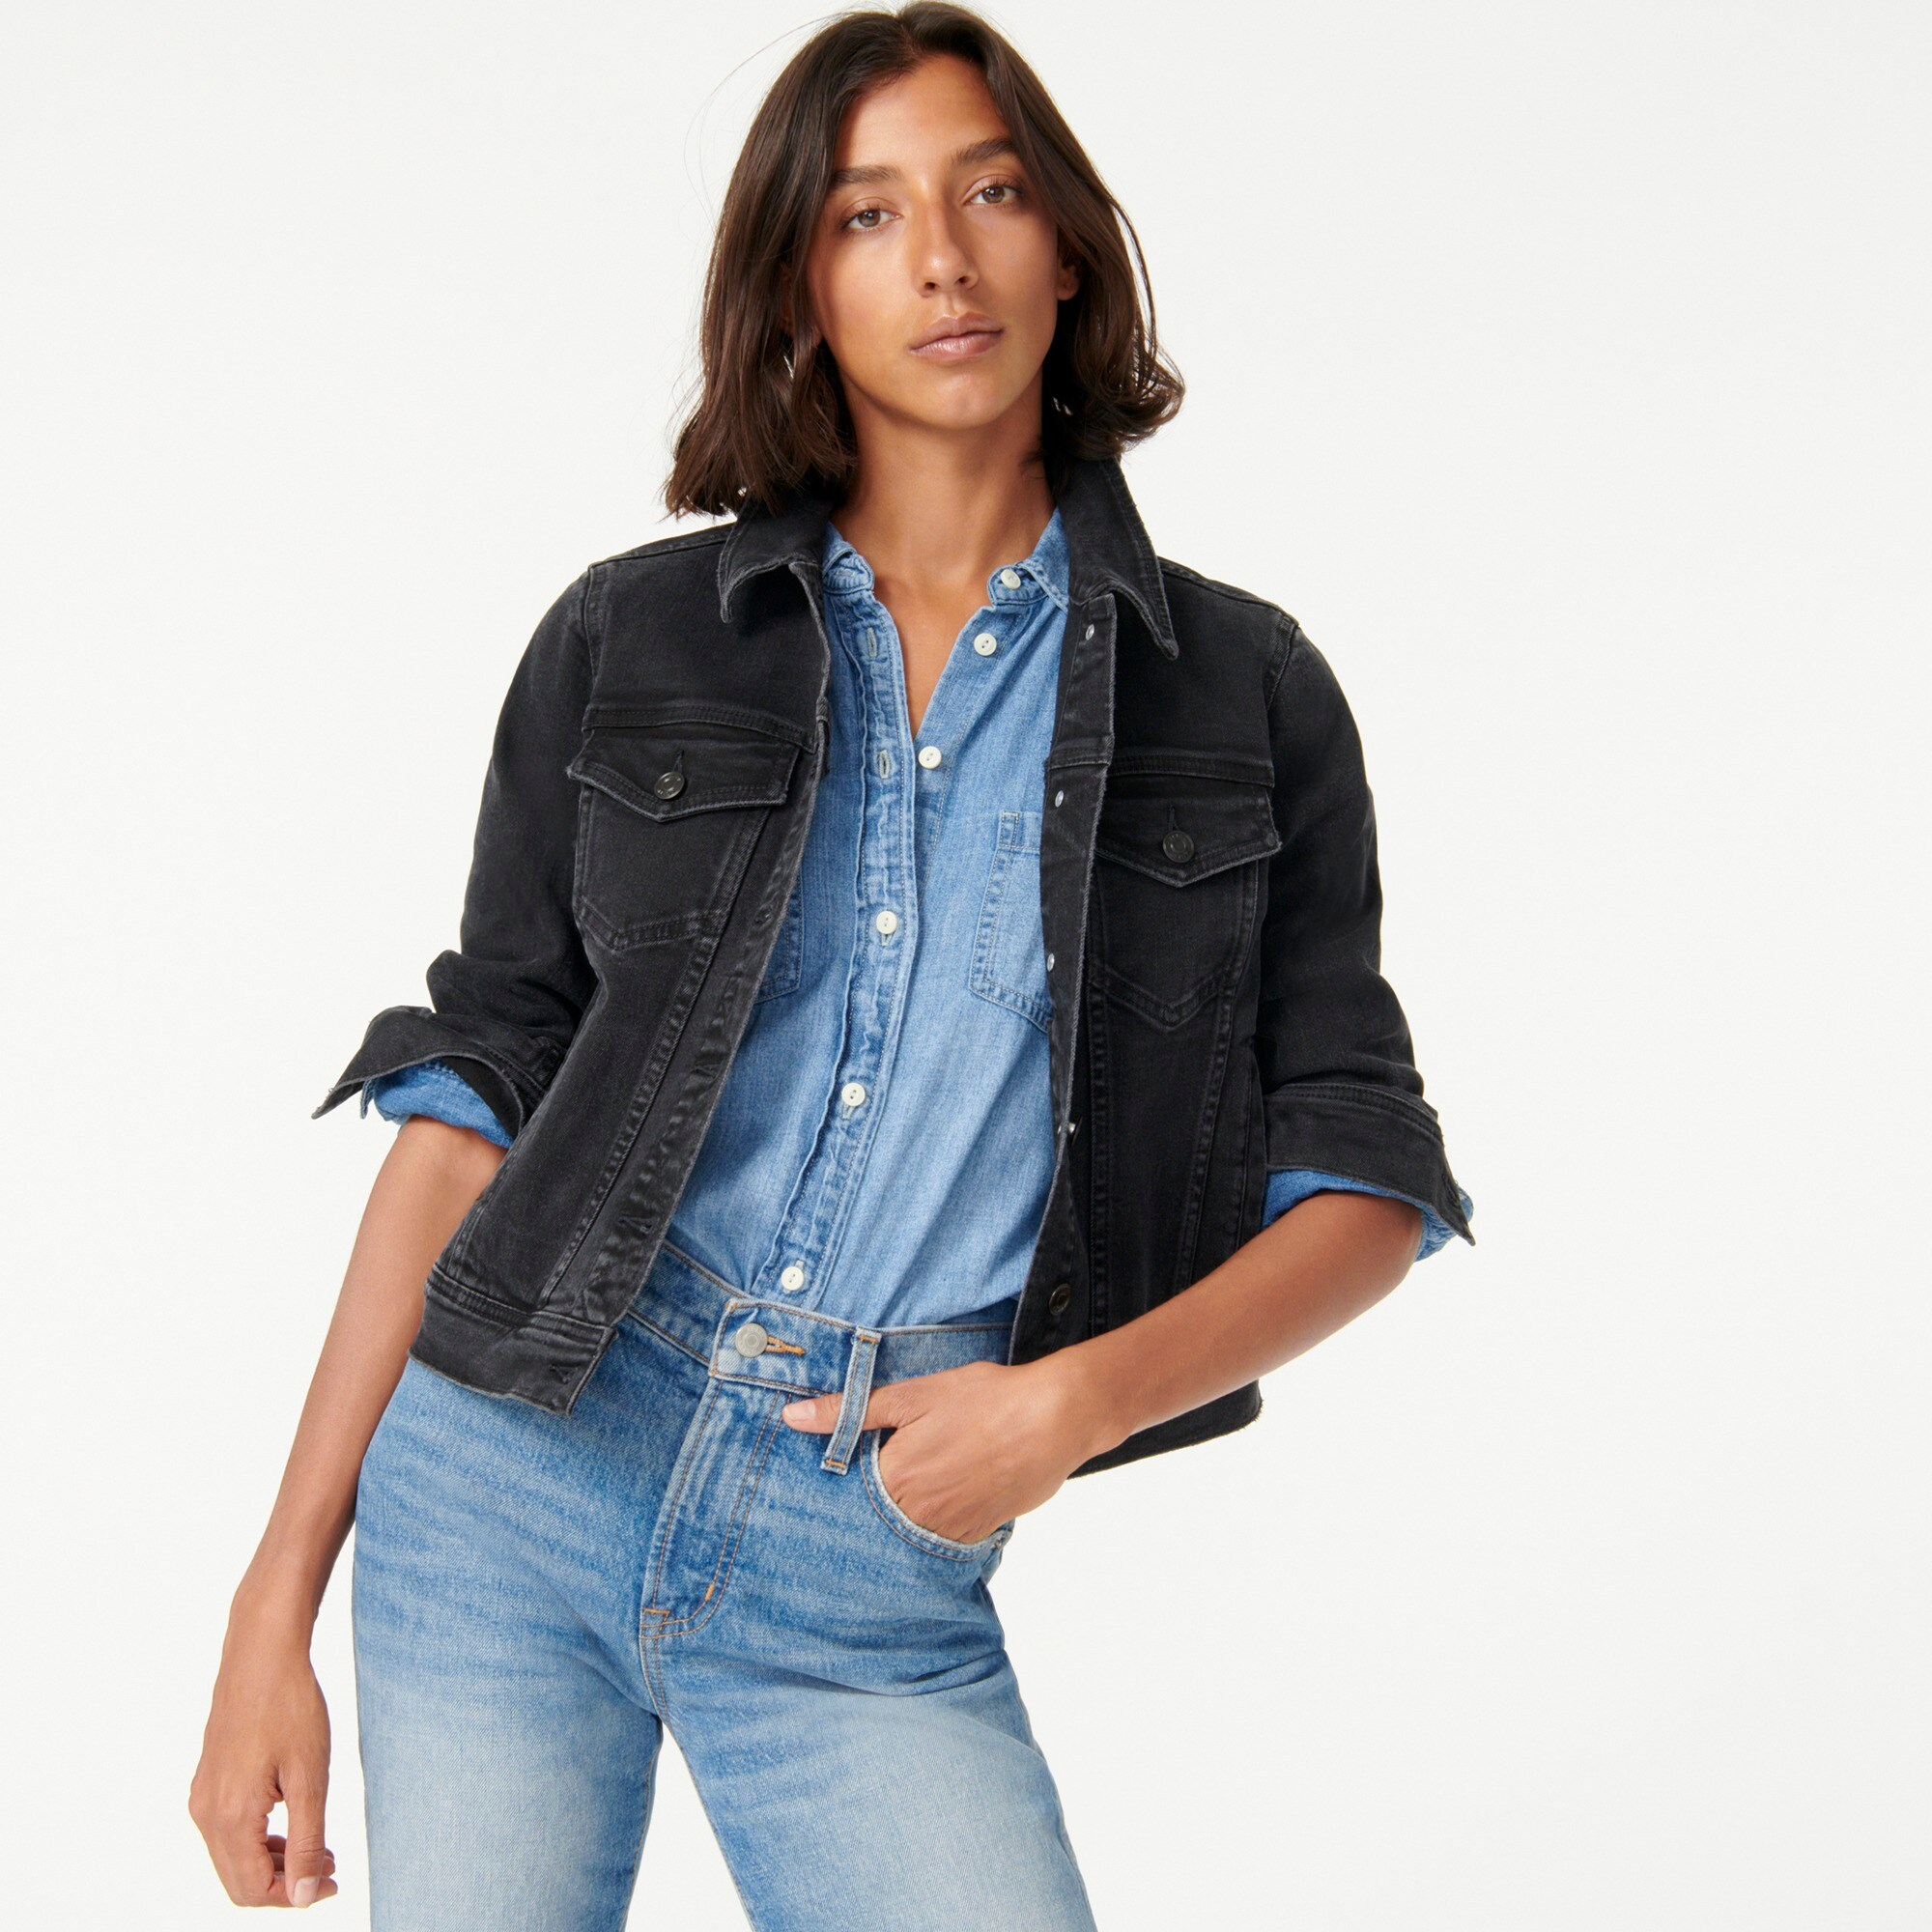 Image 4 for Petite classic denim jacket in black